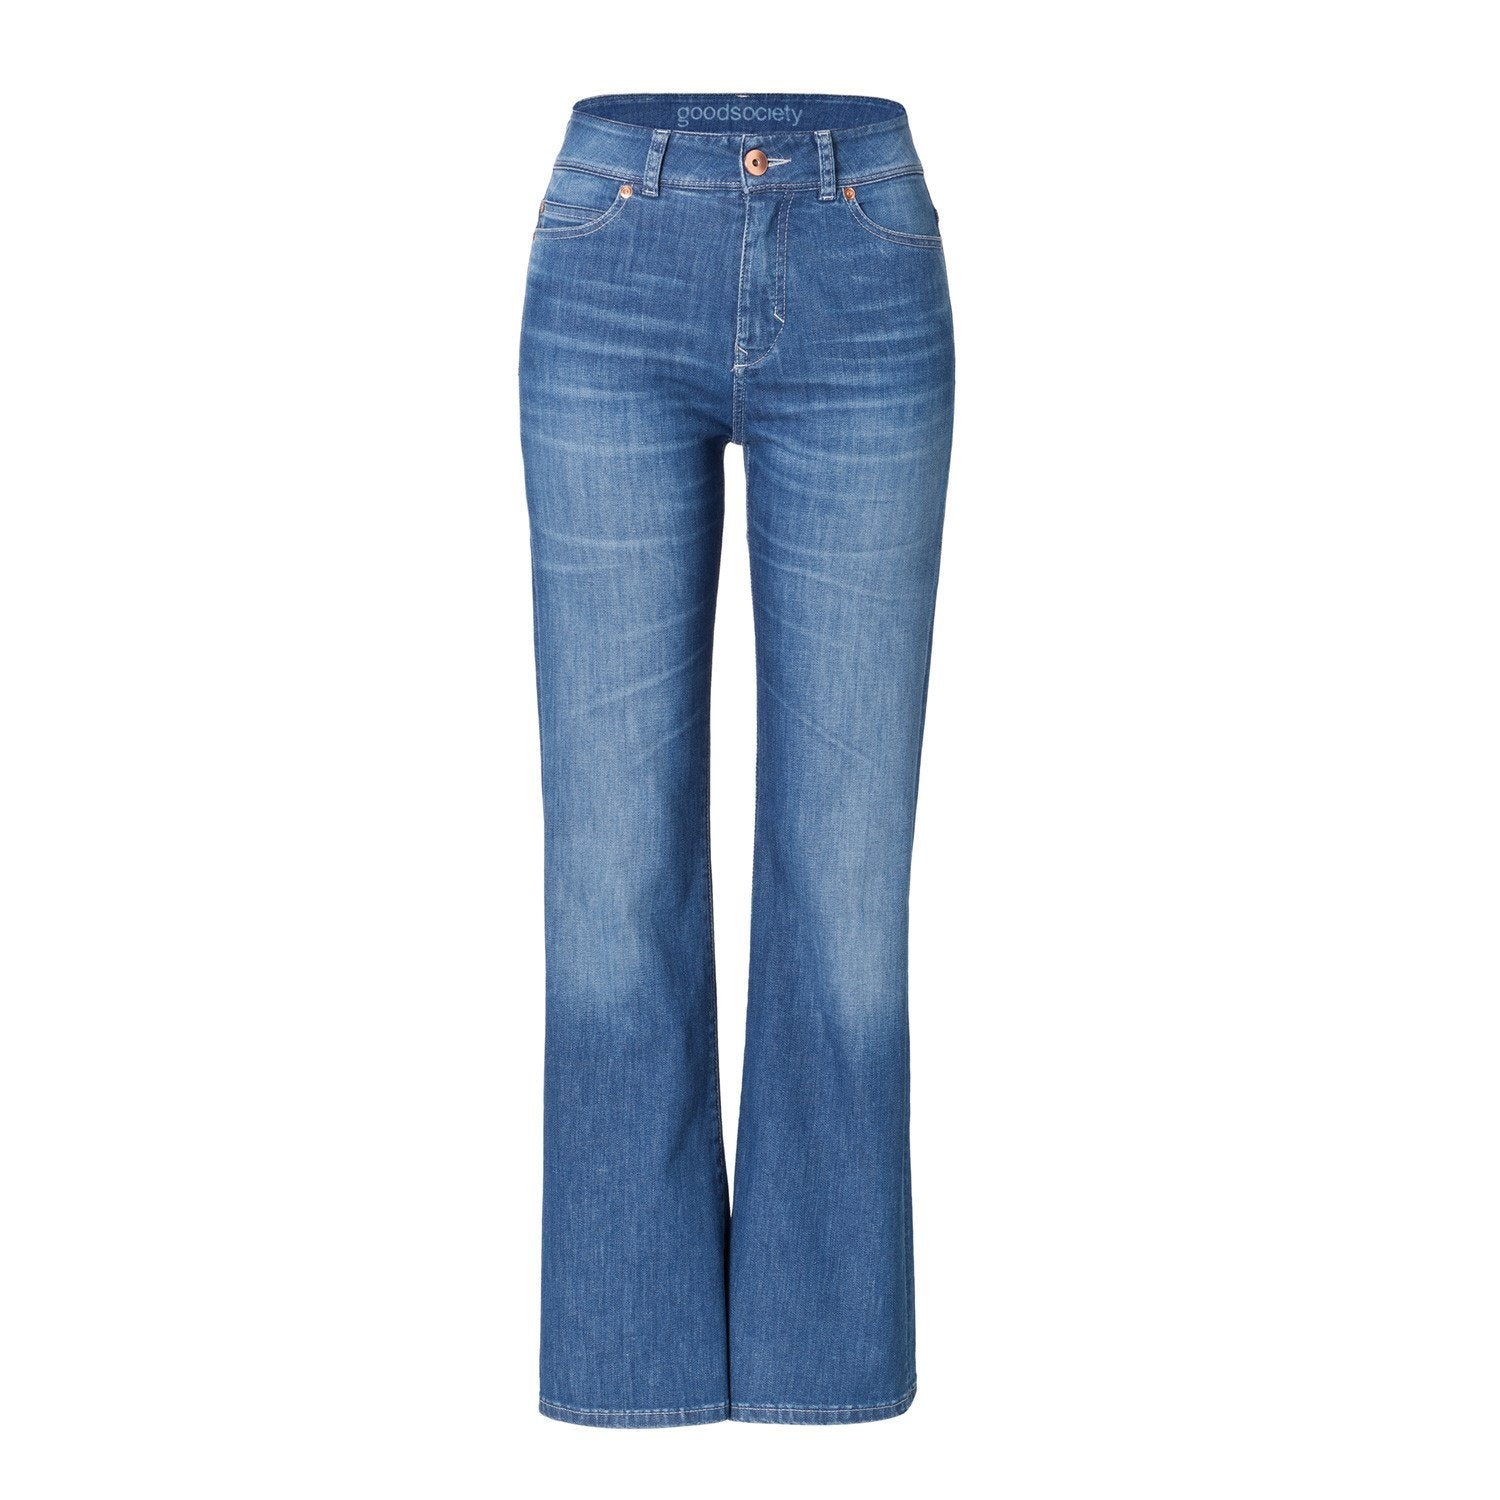 9af5bdcd5c1c Jeans - Womens High Rise Flared Jeans - Harrow